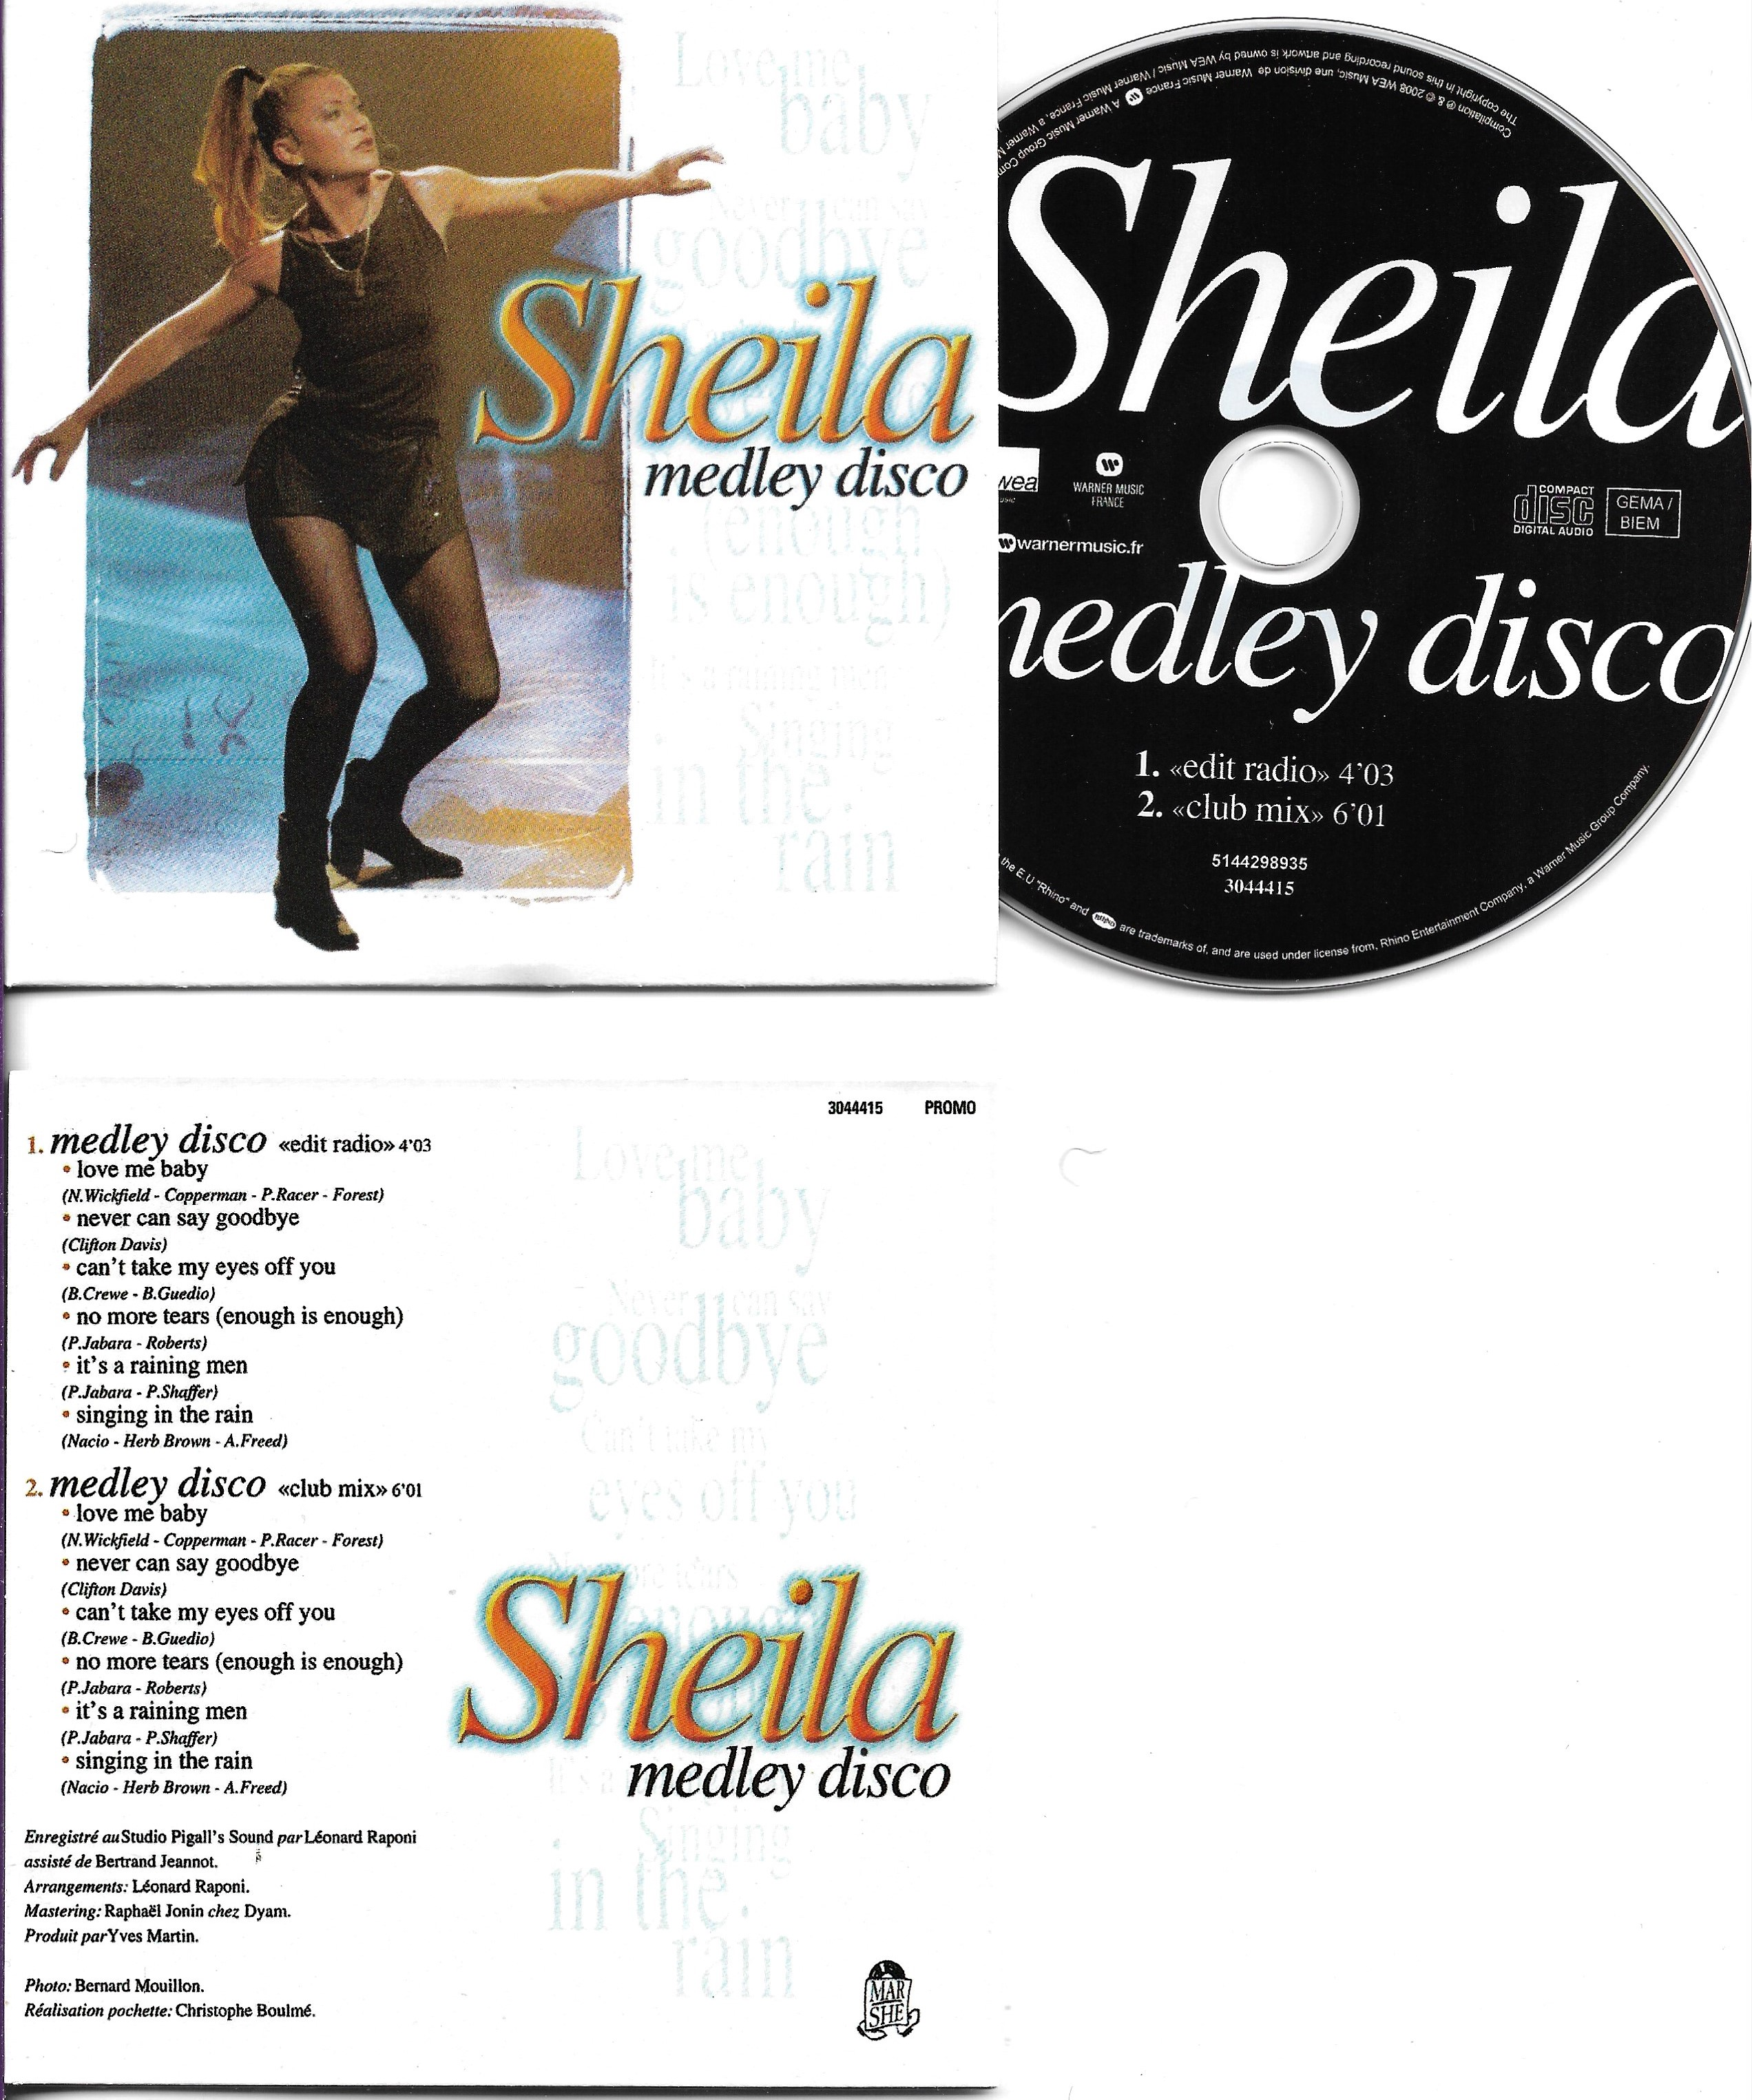 SHEILA B. DEVOTION - Medley Disco 2-track CARD SLEEVE - CD single